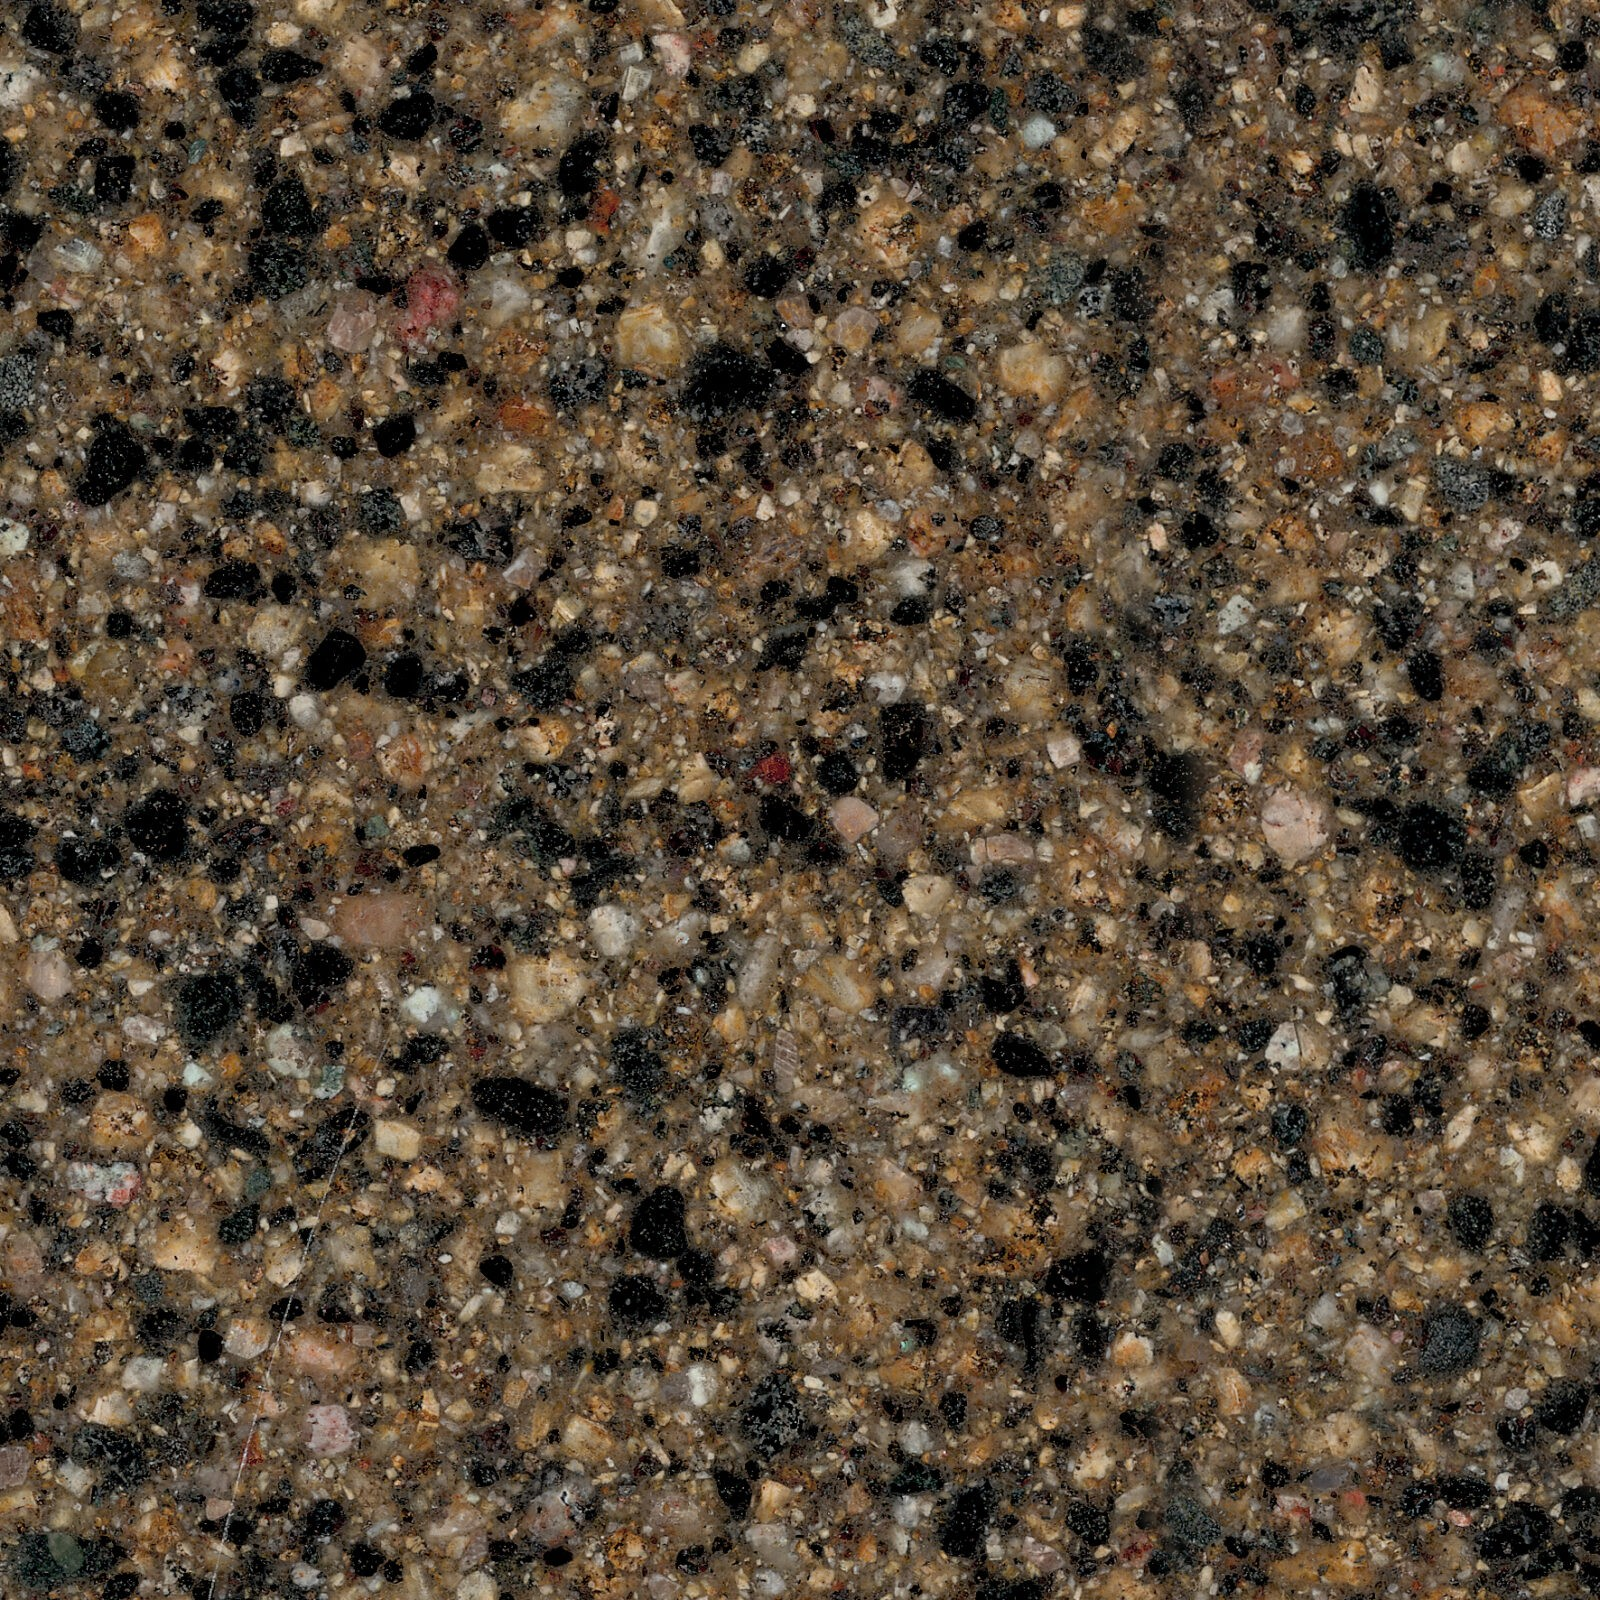 Terra Ombra - Black and Gray Granite Countertop